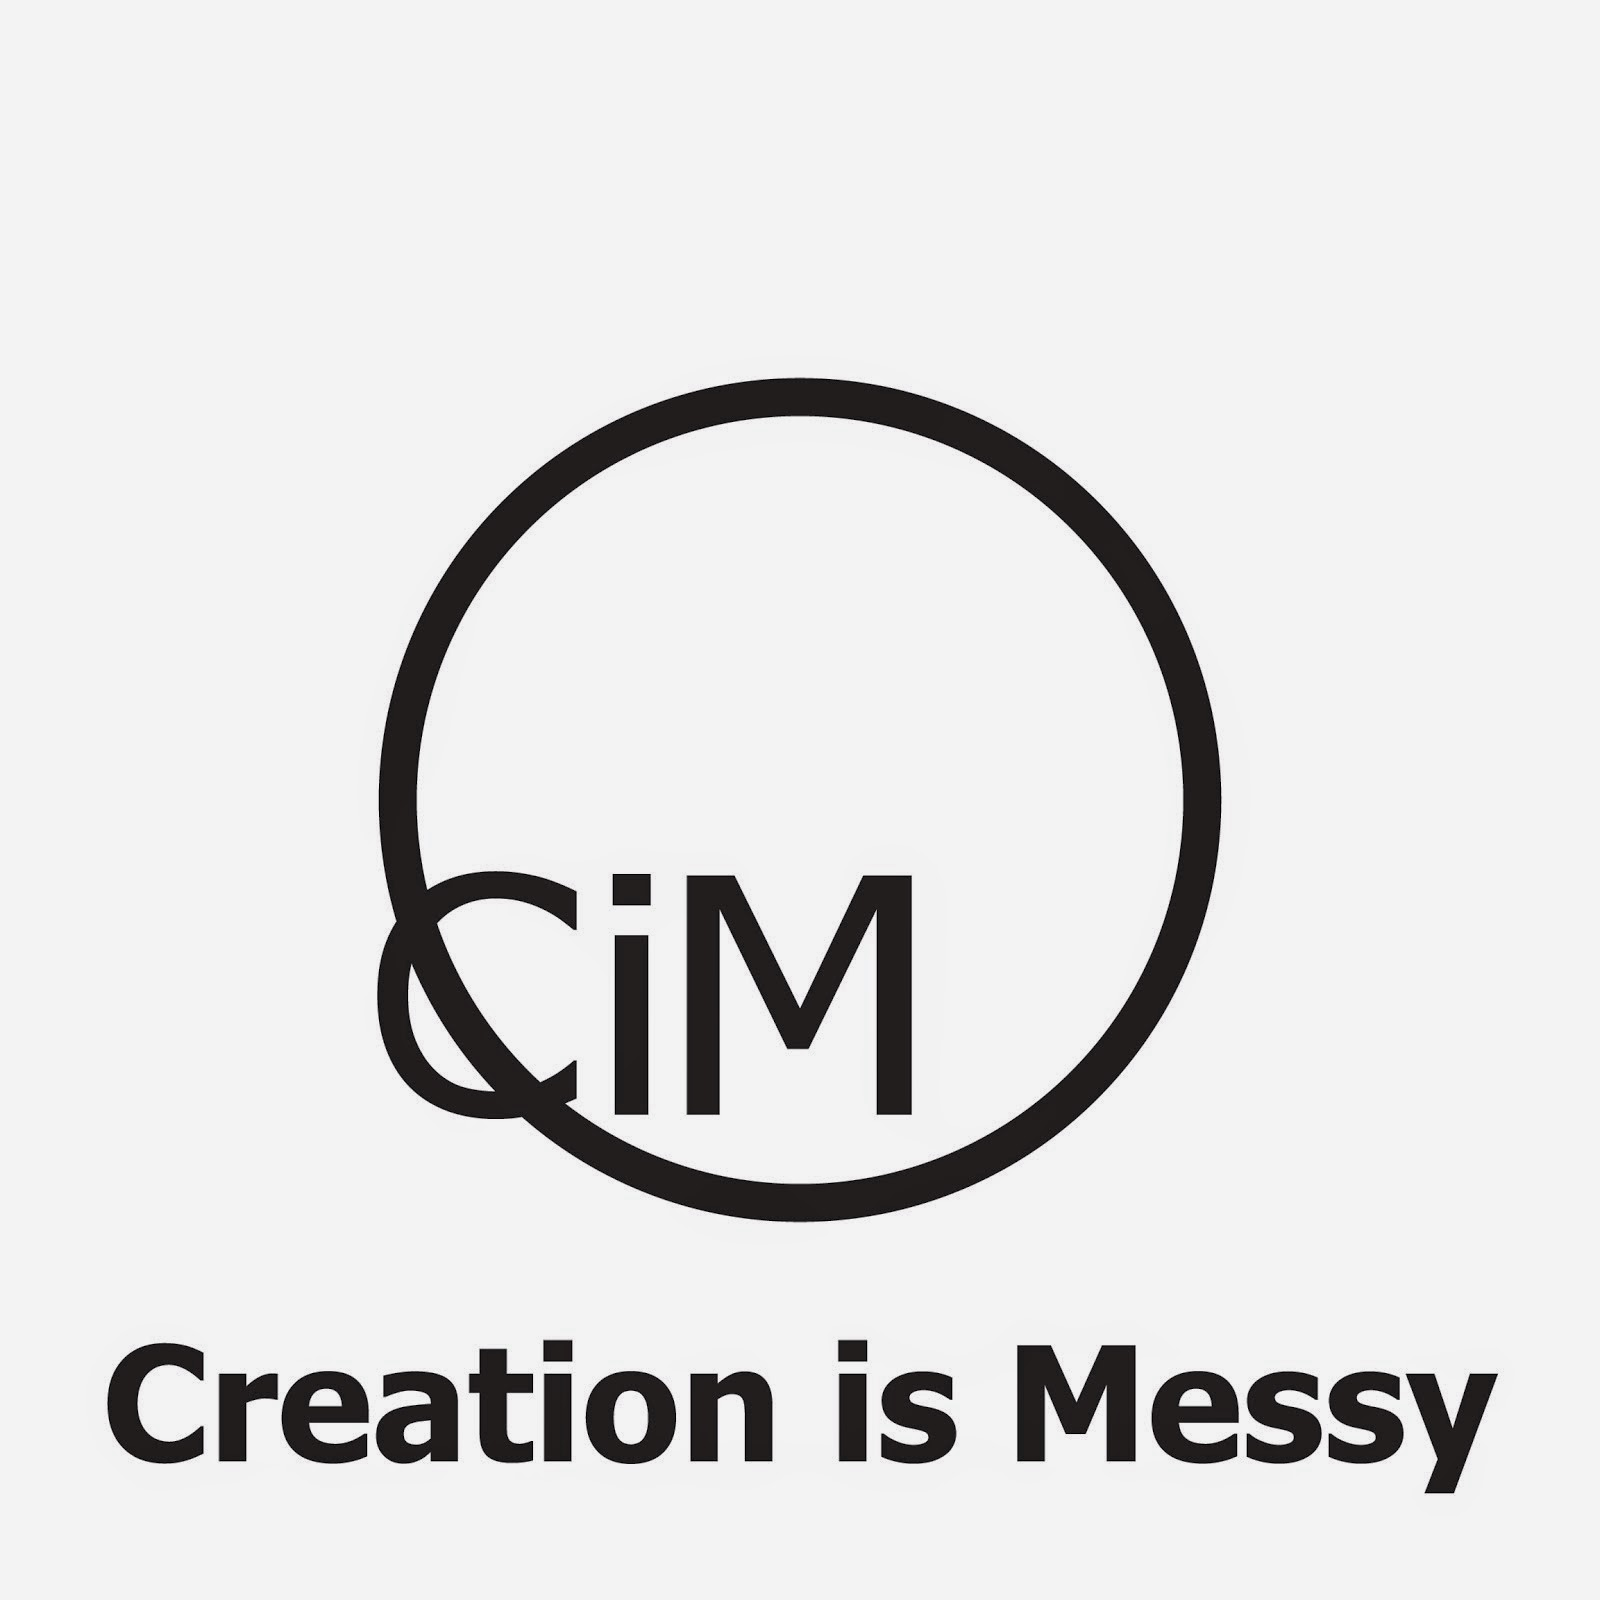 Let's Create with CiM